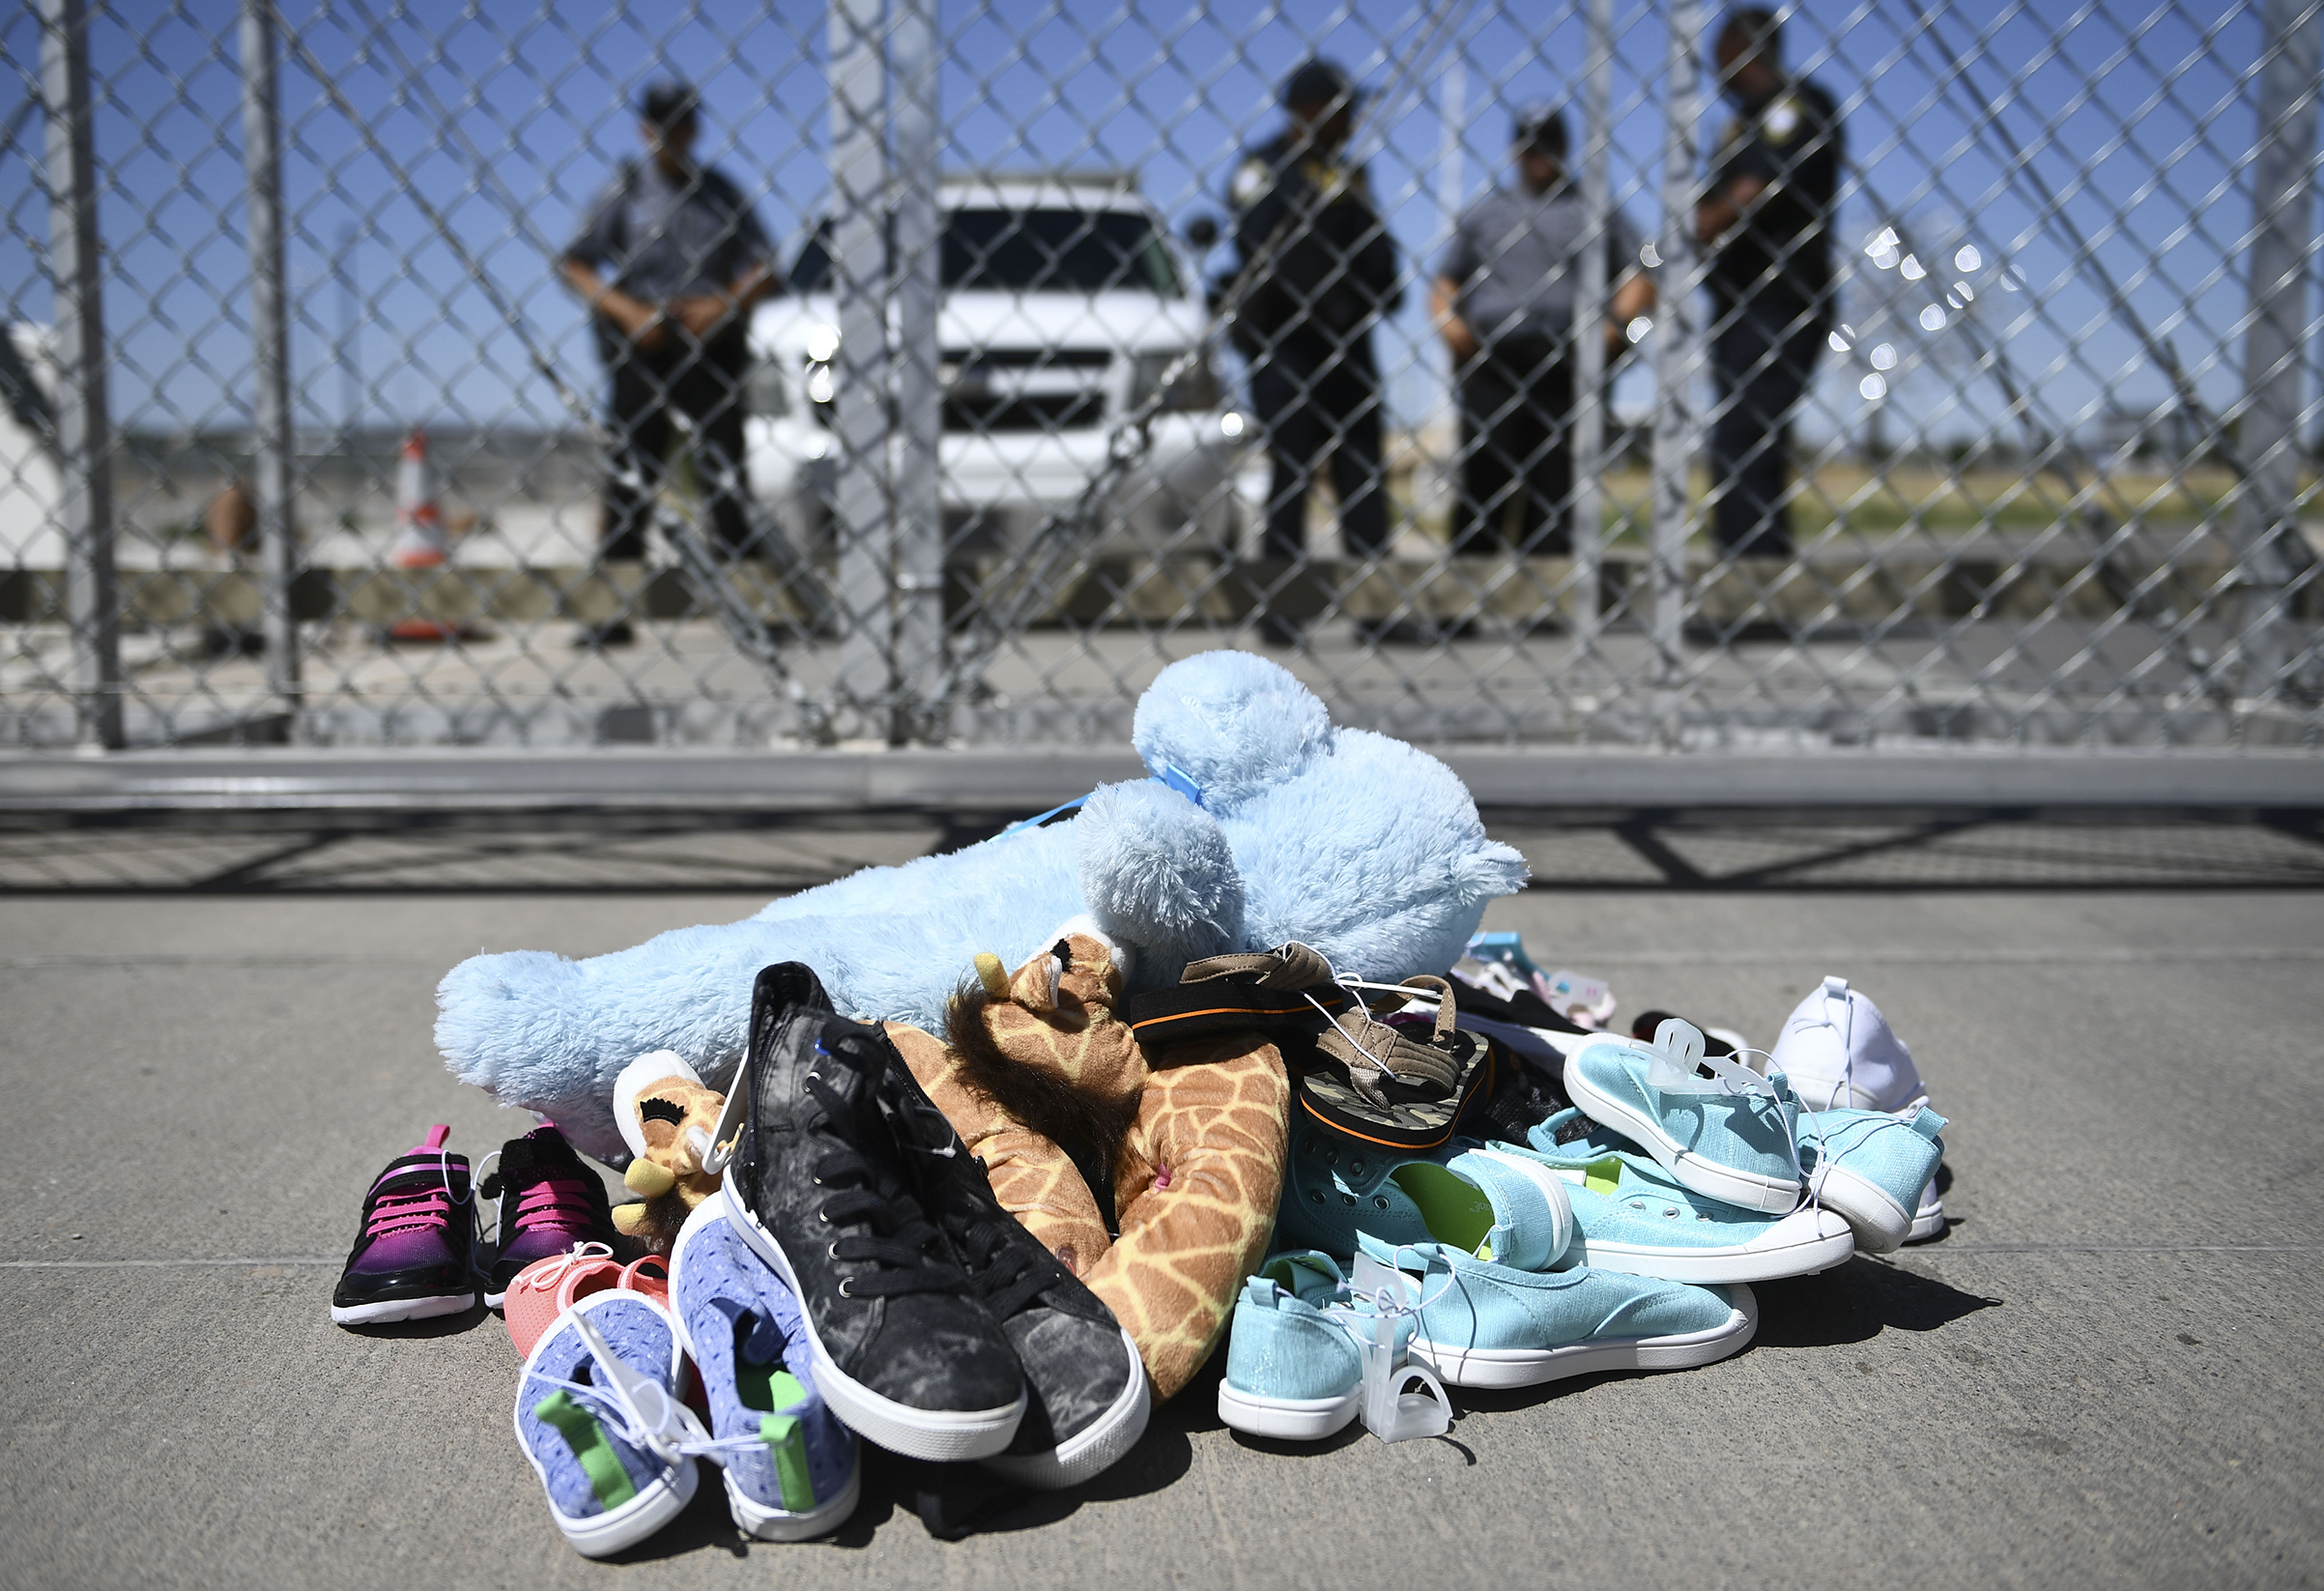 Shoes are left by people at the Tornillo Port of Entry near El Paso, Texas, on June 21, 2018 during a protest rally by several American mayors against the US administration's family separation policy.